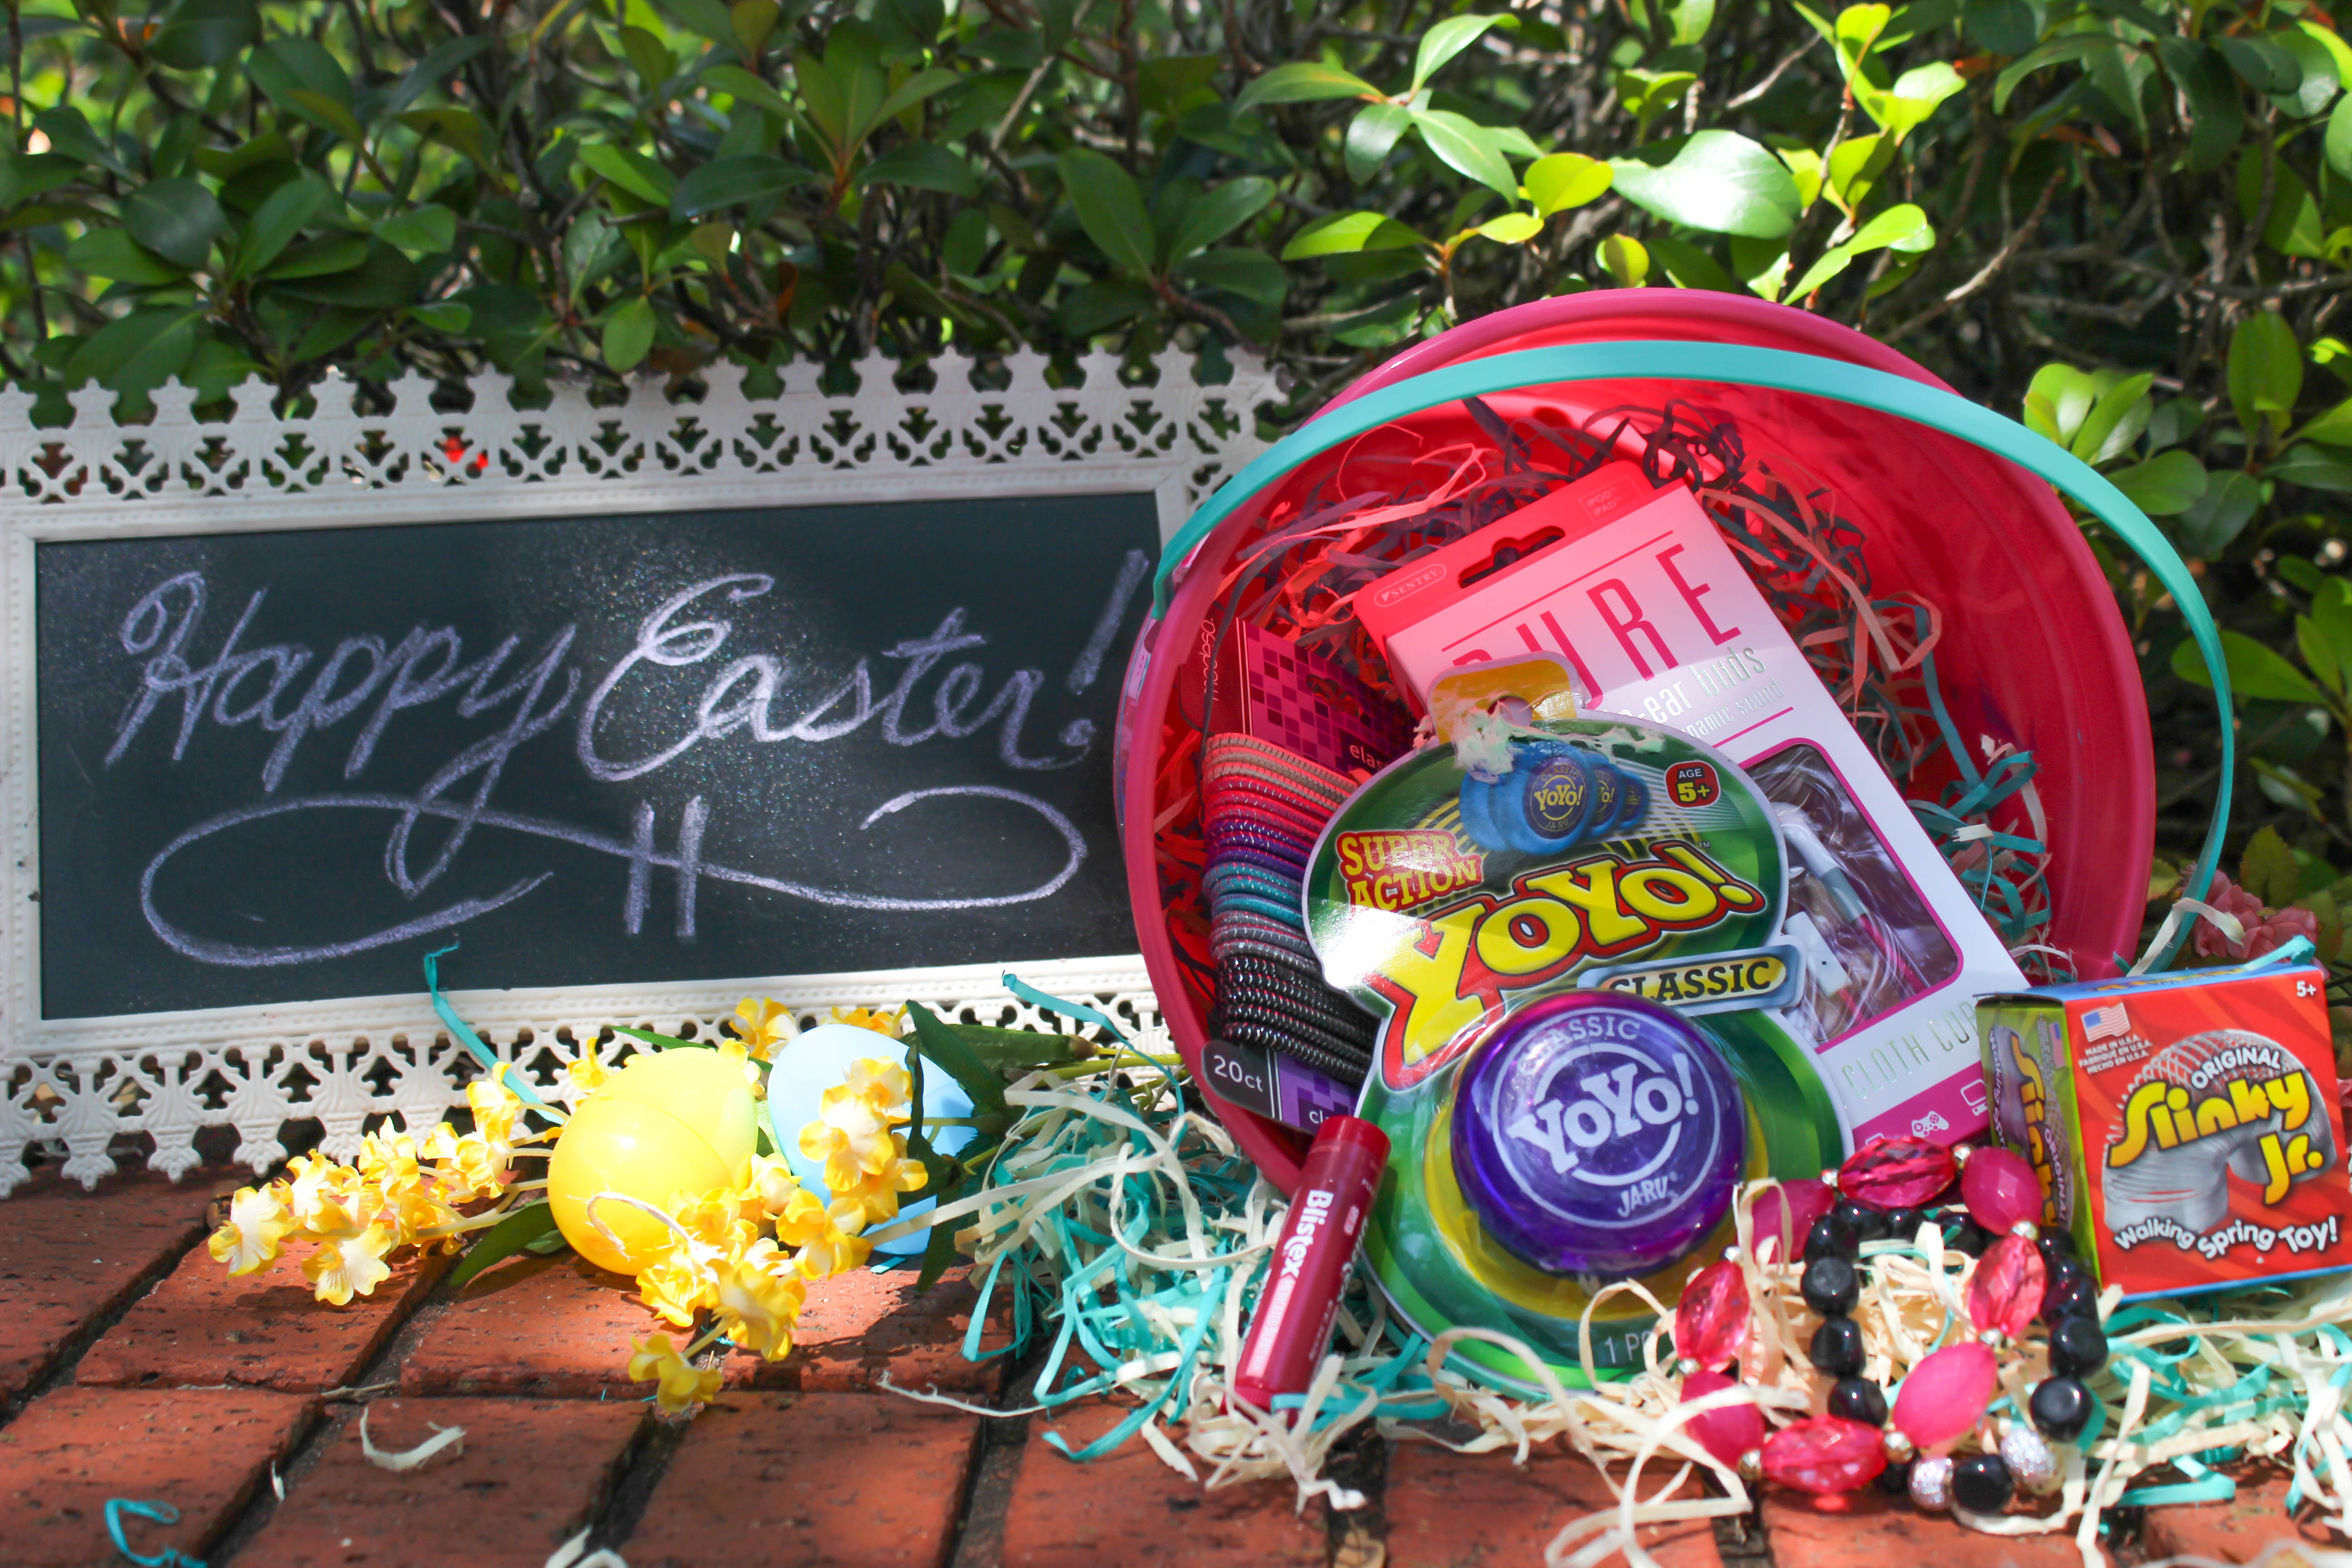 Not your ordinary easter basket ideas xo ashley with this assortment of goodies budget conscious is anything but boring a clever conglomeration of thrifty treasures turns ordinary baskets into something negle Choice Image